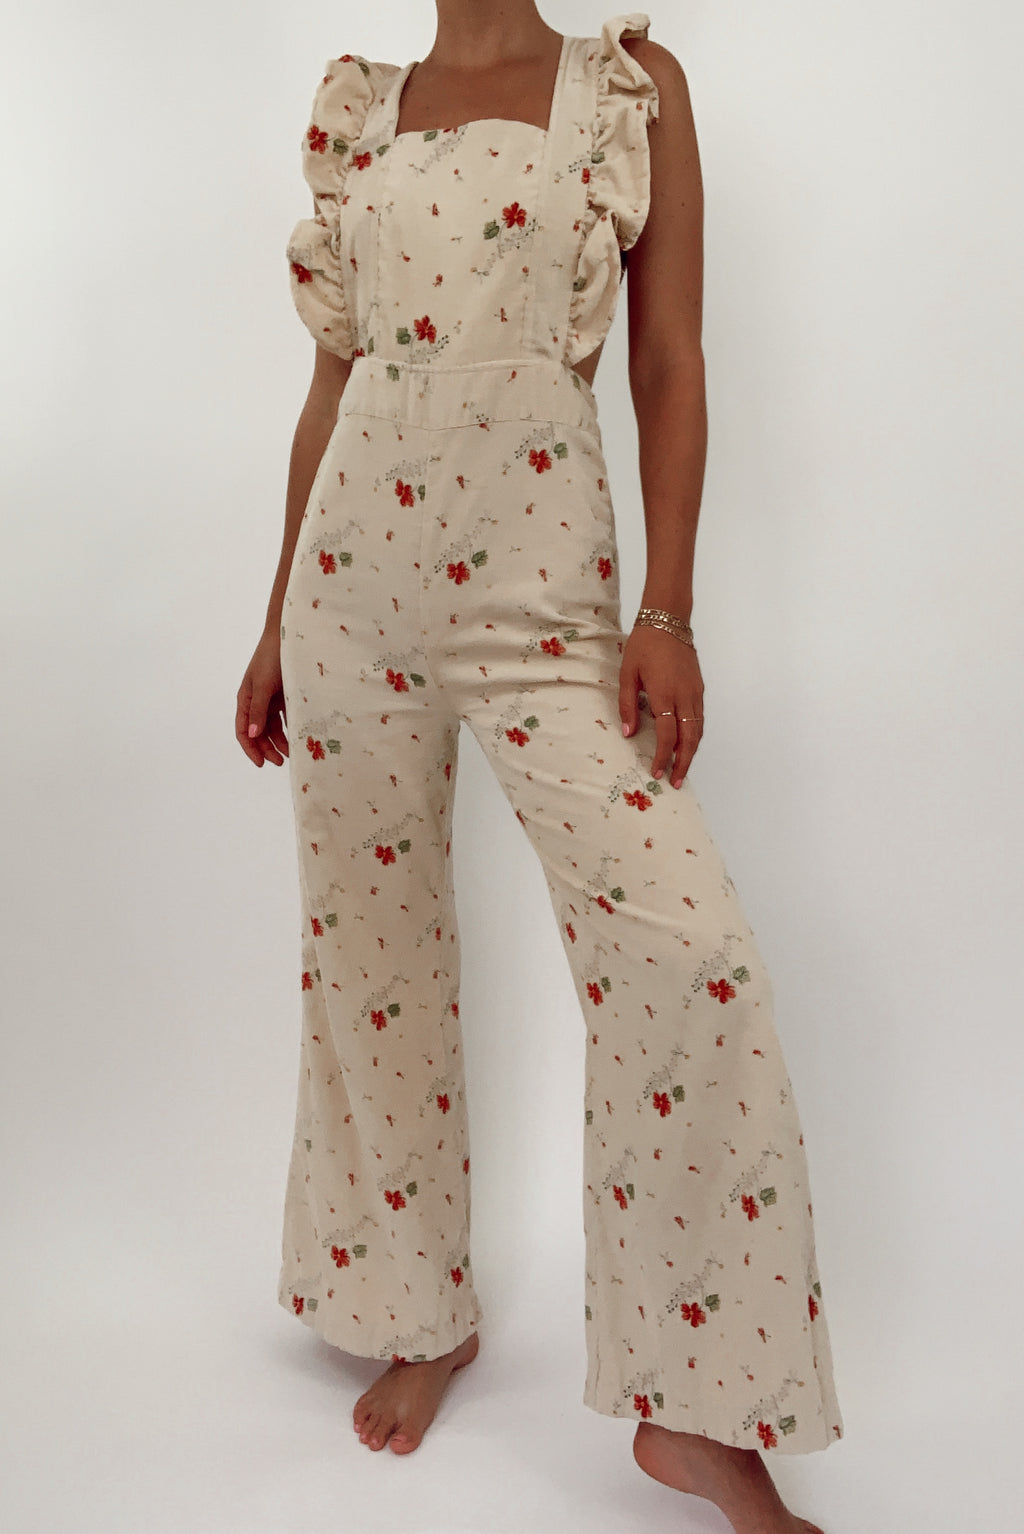 Favorite 70's Floral Cord Overalls (S-M)